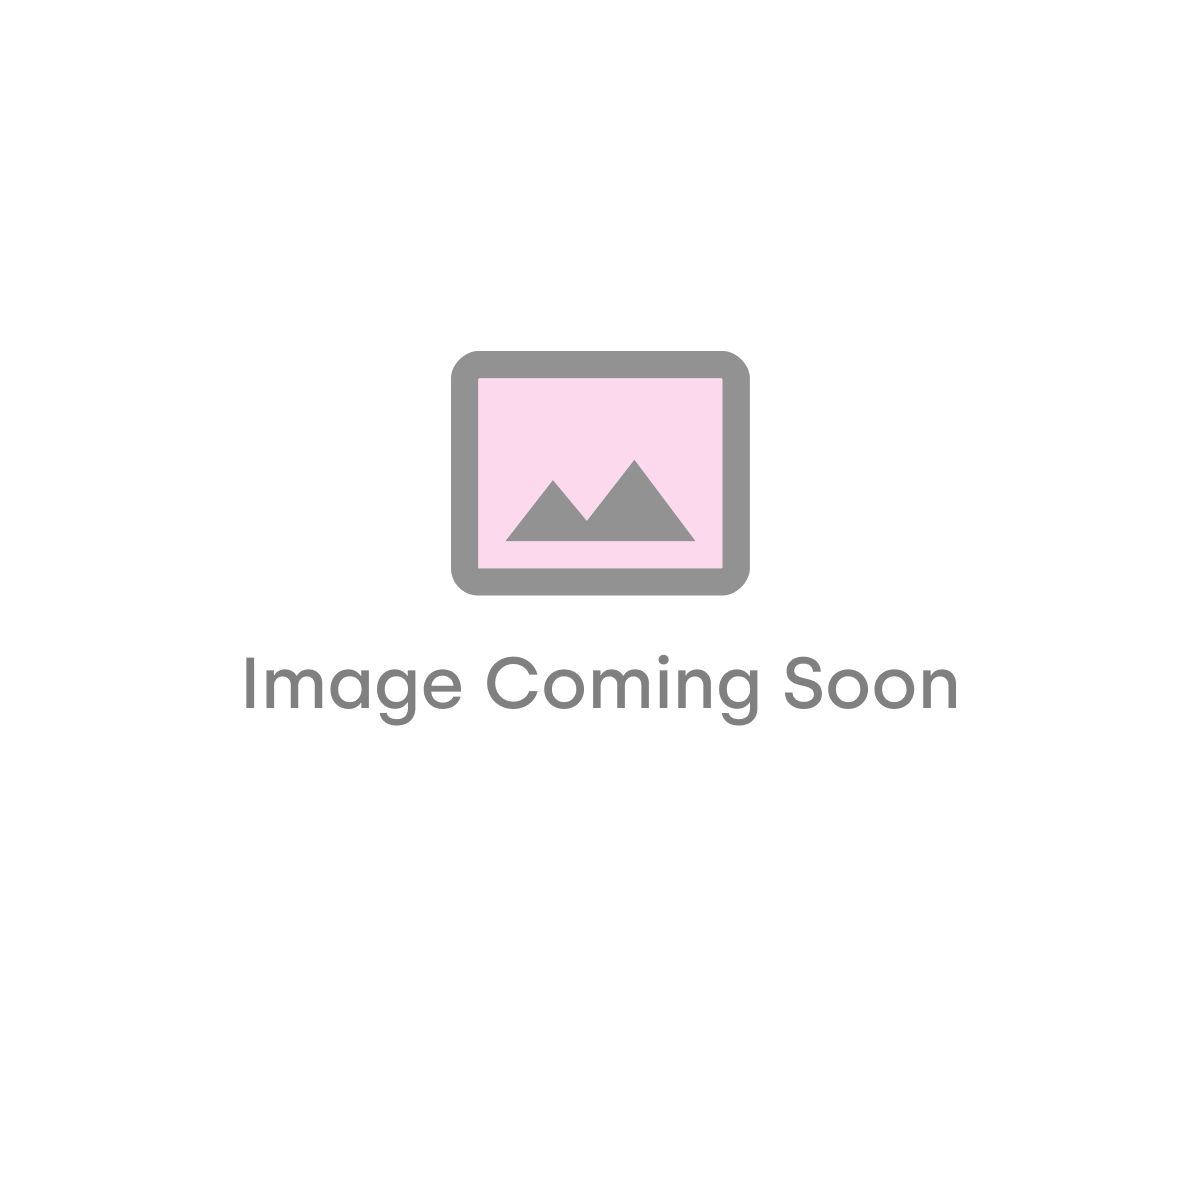 Nuie Pacific 760mm Pivot Shower Door (18572)